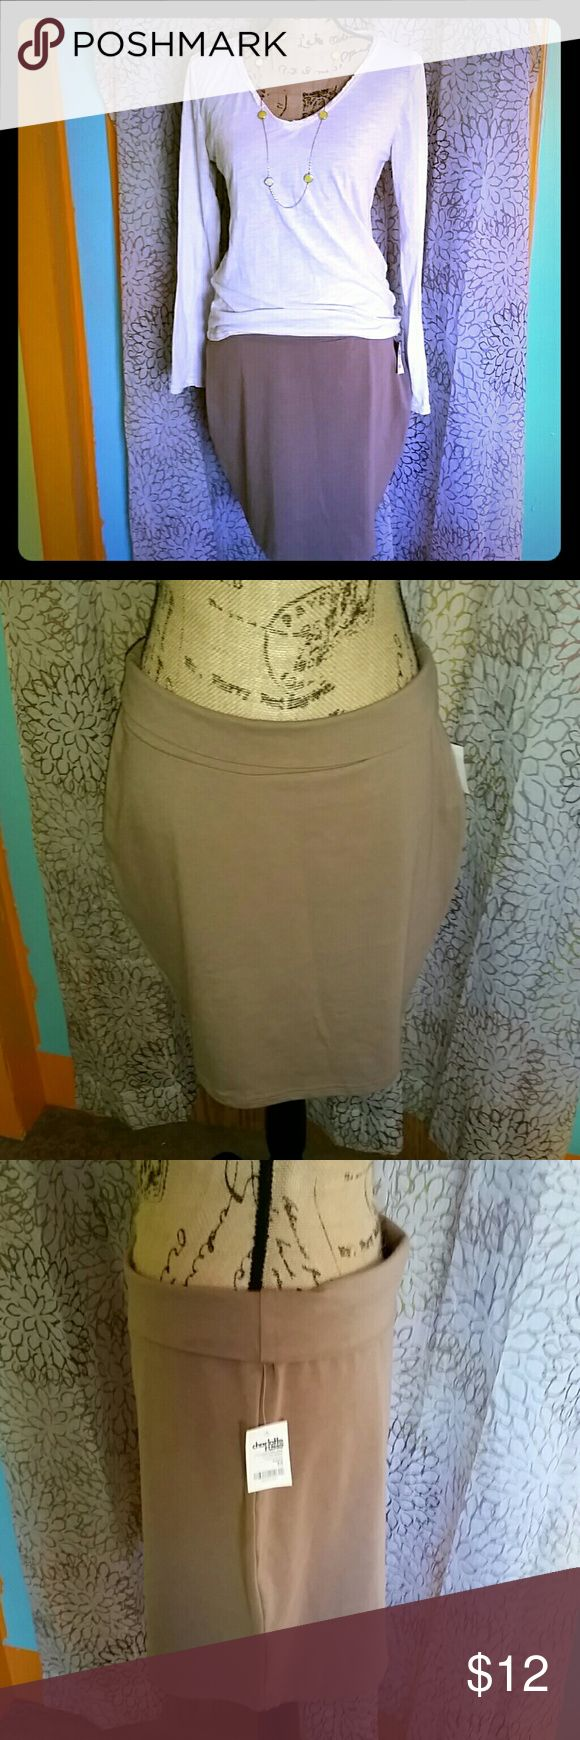 NWT Charlotte Russe tan skirt Beautiful tan skirt NWT Charlotte Russe. Very fashionable. Can be worn to work with leggings ot tights. Then straight to a night out on the town! Simply a must have this spring thru summer! Bundle and save. Happy poshing!! Charlotte Russe Skirts